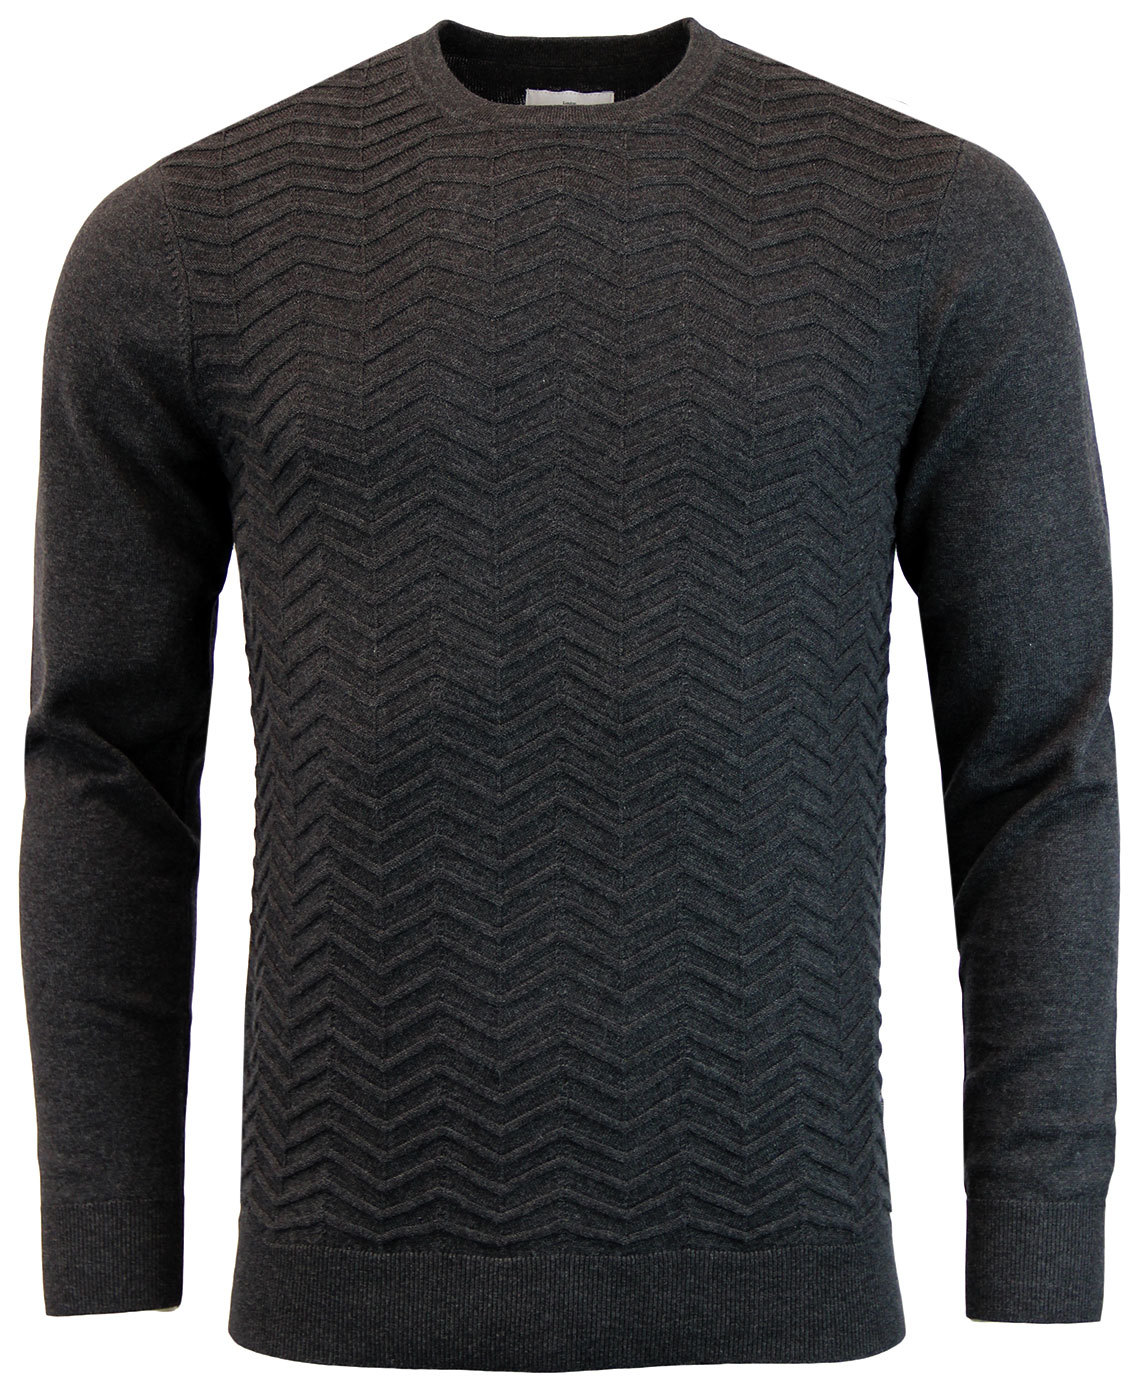 Buddy PETER WERTH Retro Mod Zig Zag Knit Jumper